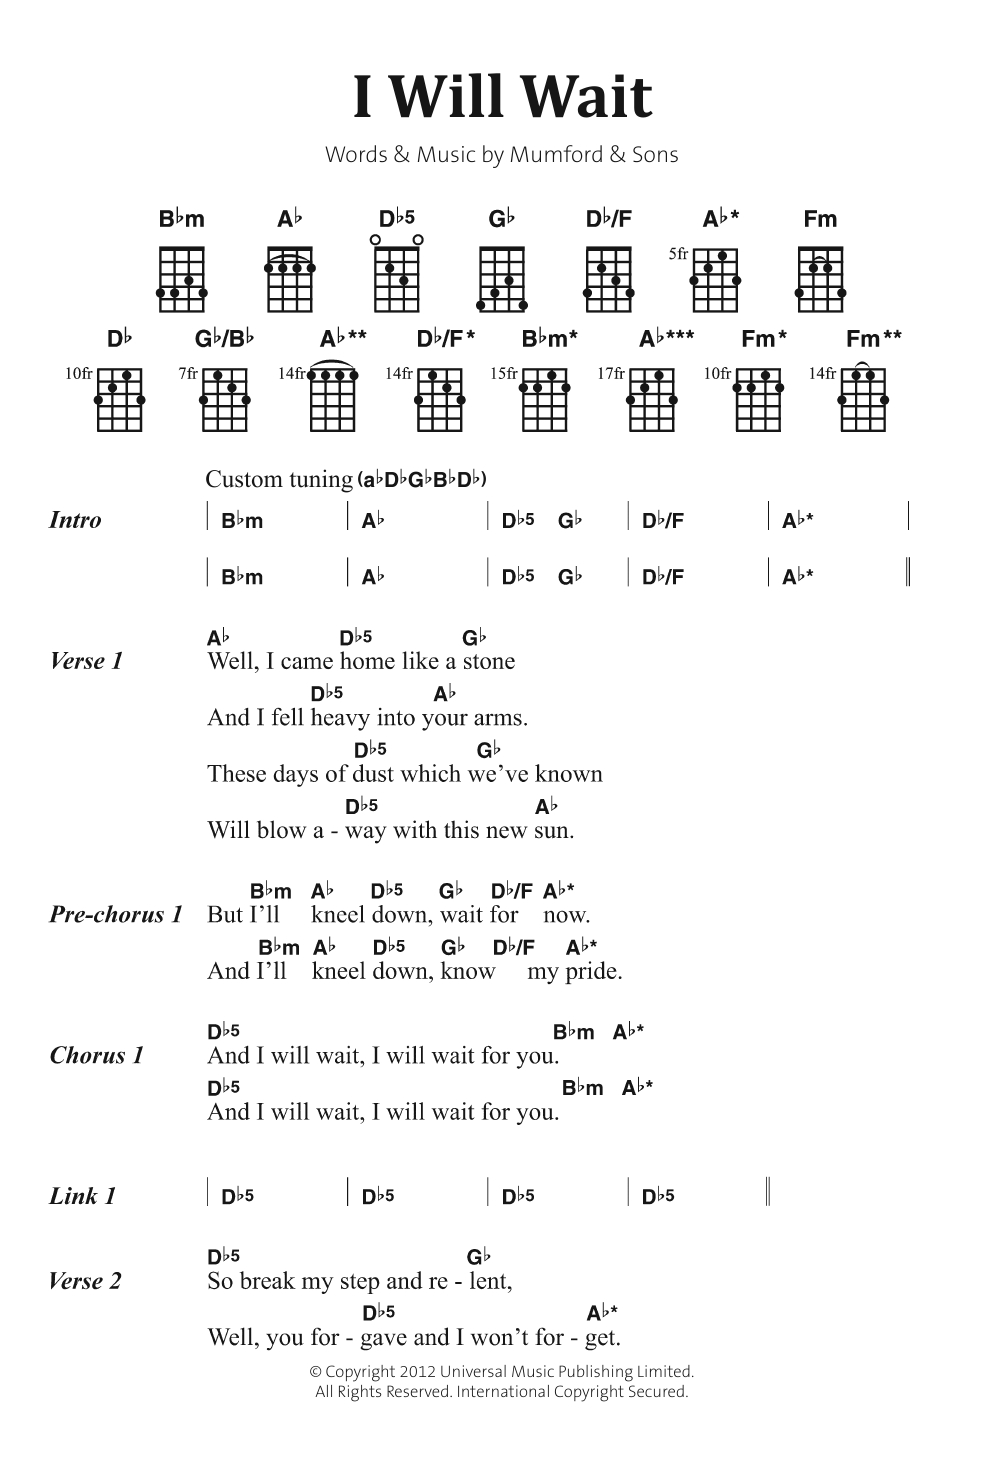 Little Lion Man Chords Sheet Music Digital Files To Print Licensed Marcus Mumford Digital